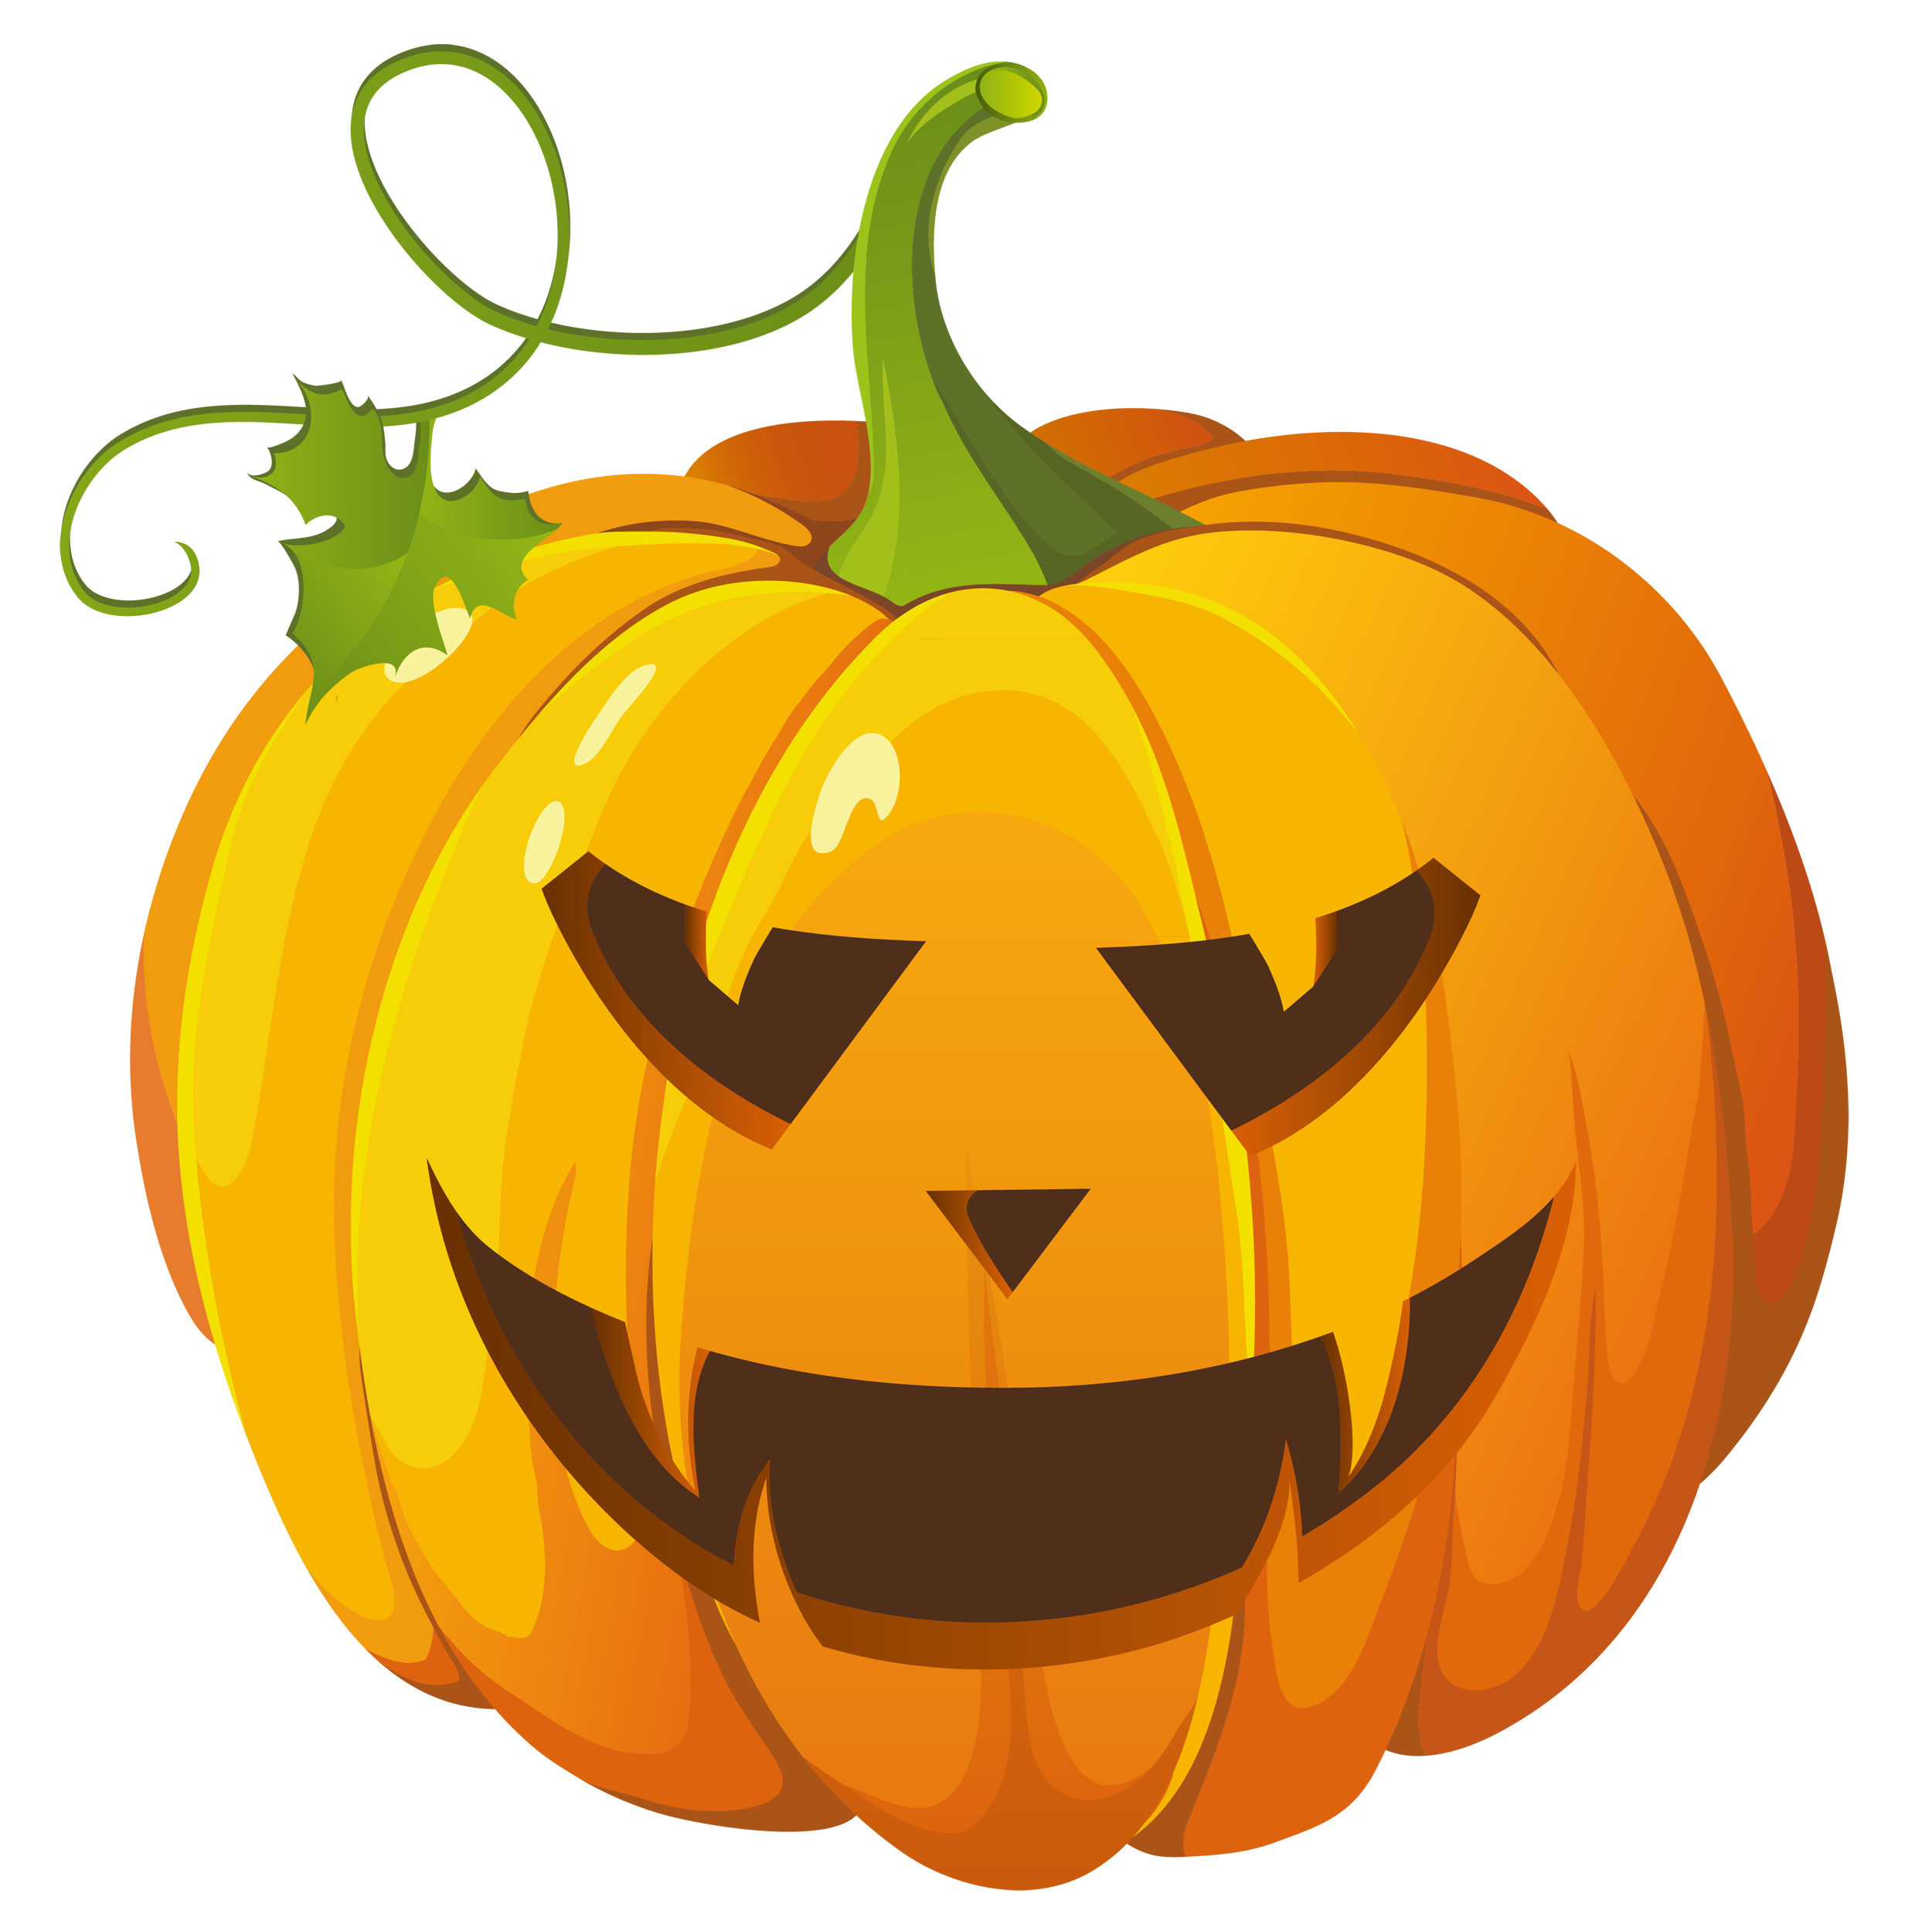 Cute Pumpkin Patch Clipart Large Transparent Halloween Pumpkin Clipart